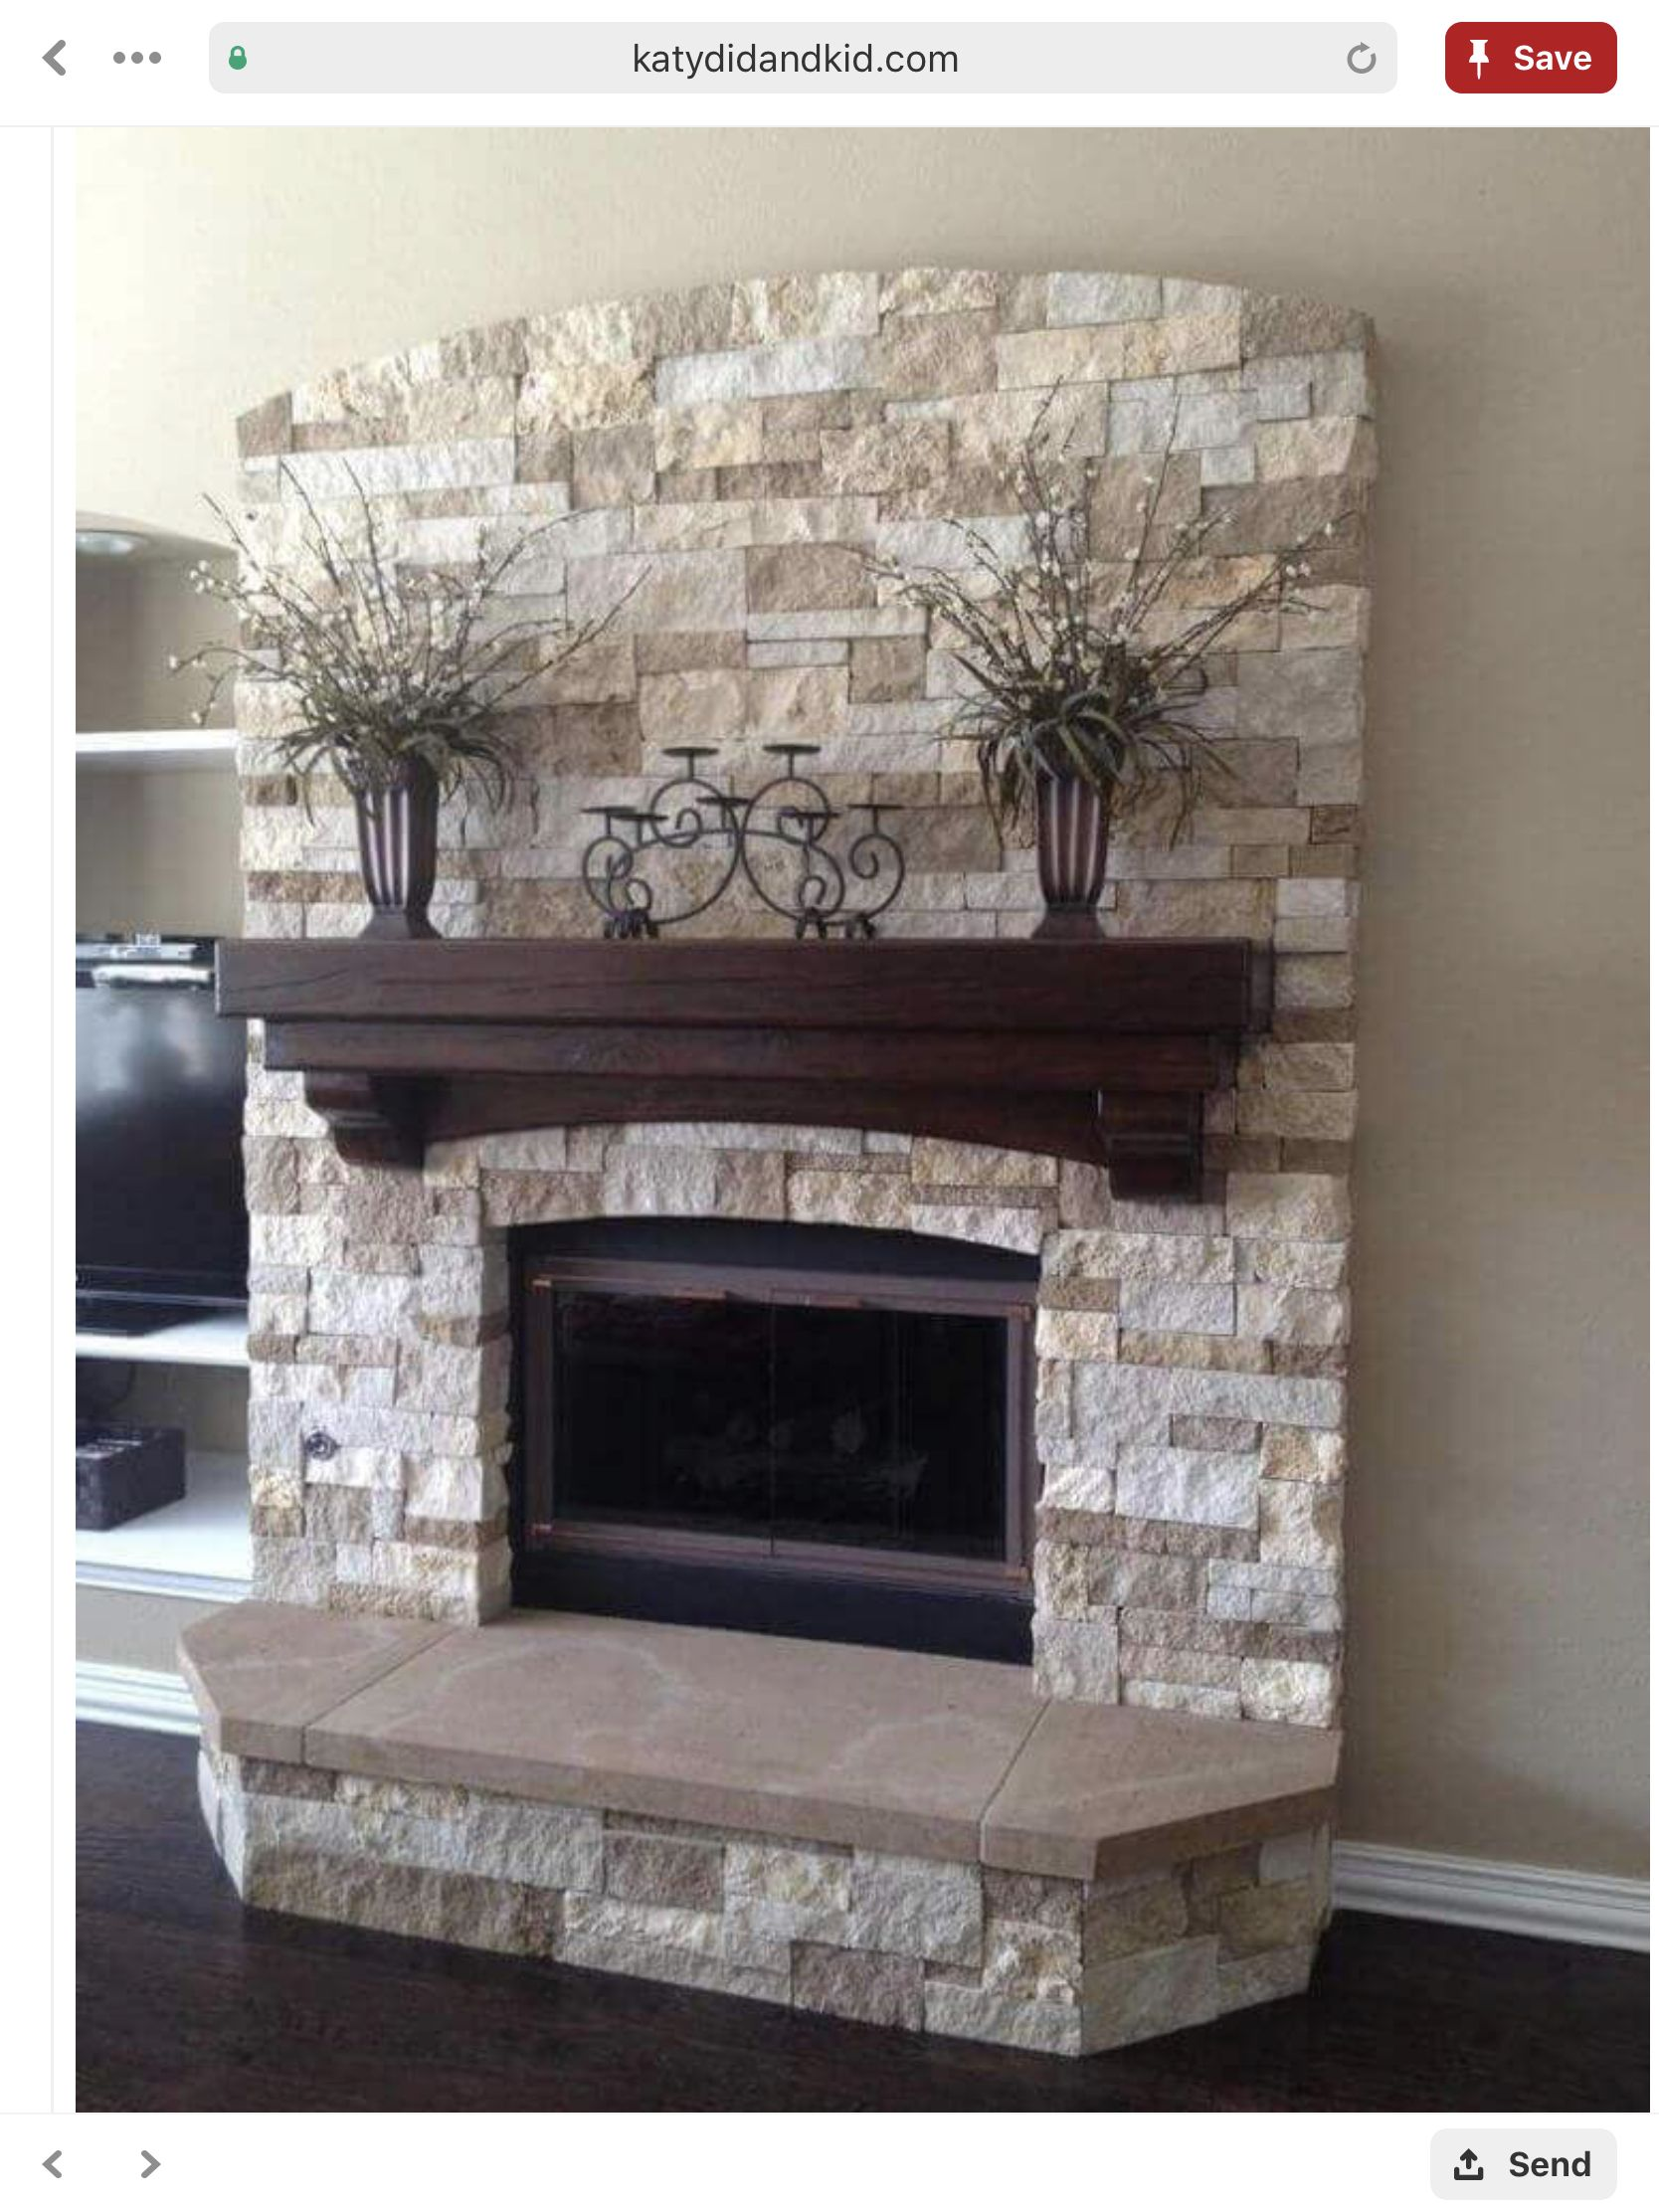 Two Tone Brick Color Home Fireplace Fireplace Remodel Fireplace Makeover